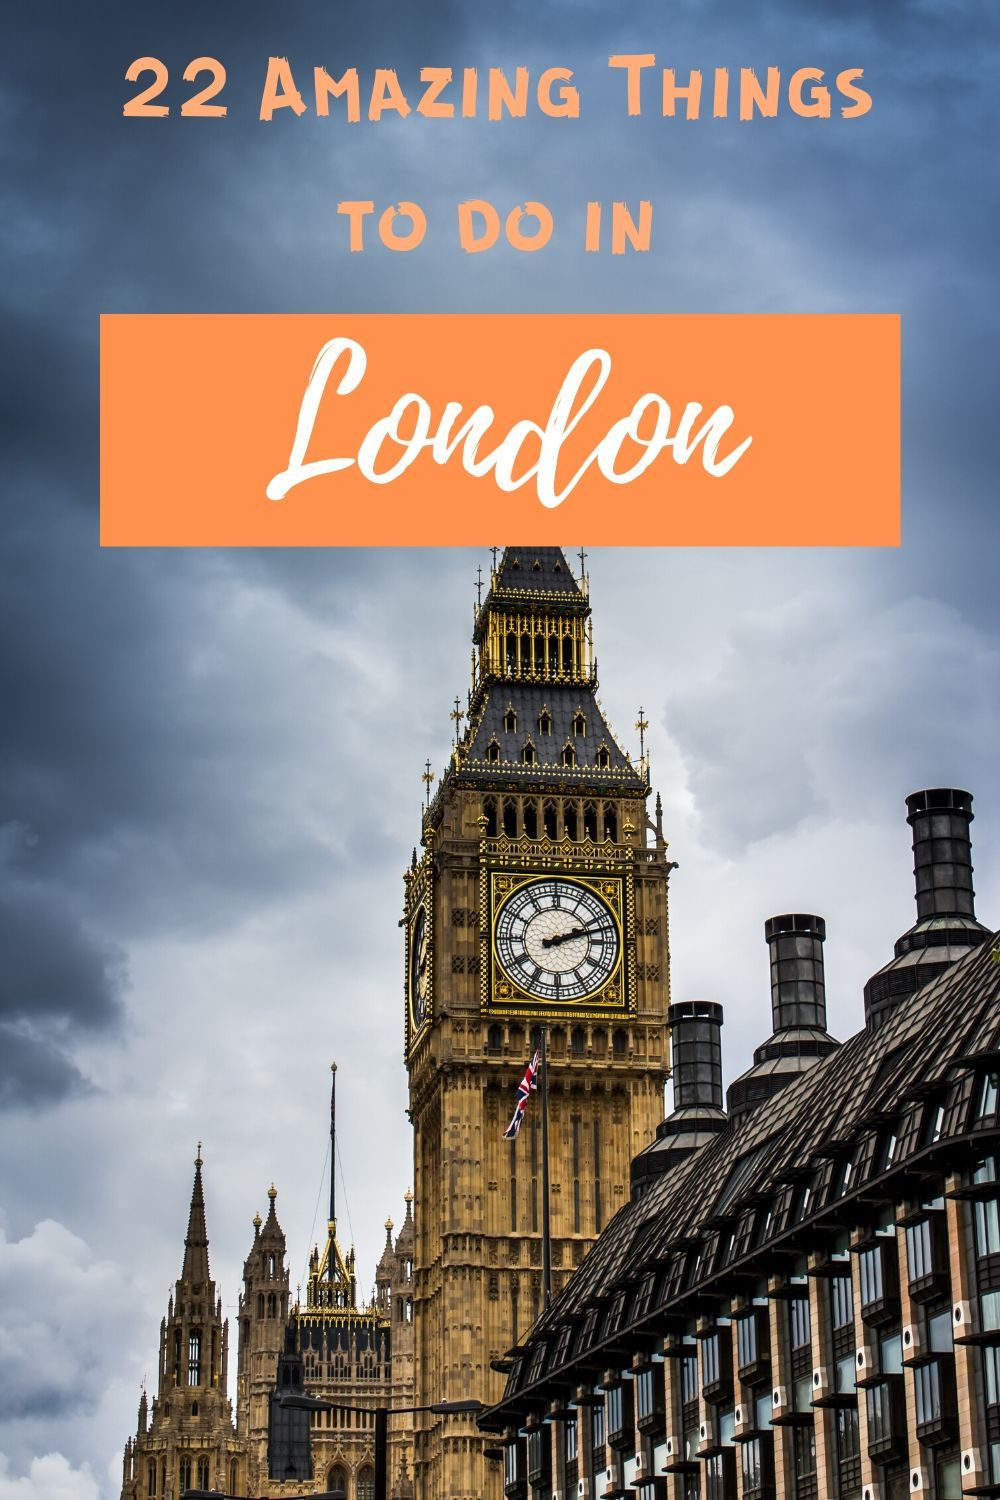 The ultimate London Bucket list - Here are some of  common places that can be visited during your stay in the largest city in England #london #londonbridge #londontower #travellondon #uk #travelbucketlist #traveldestinations #travellover